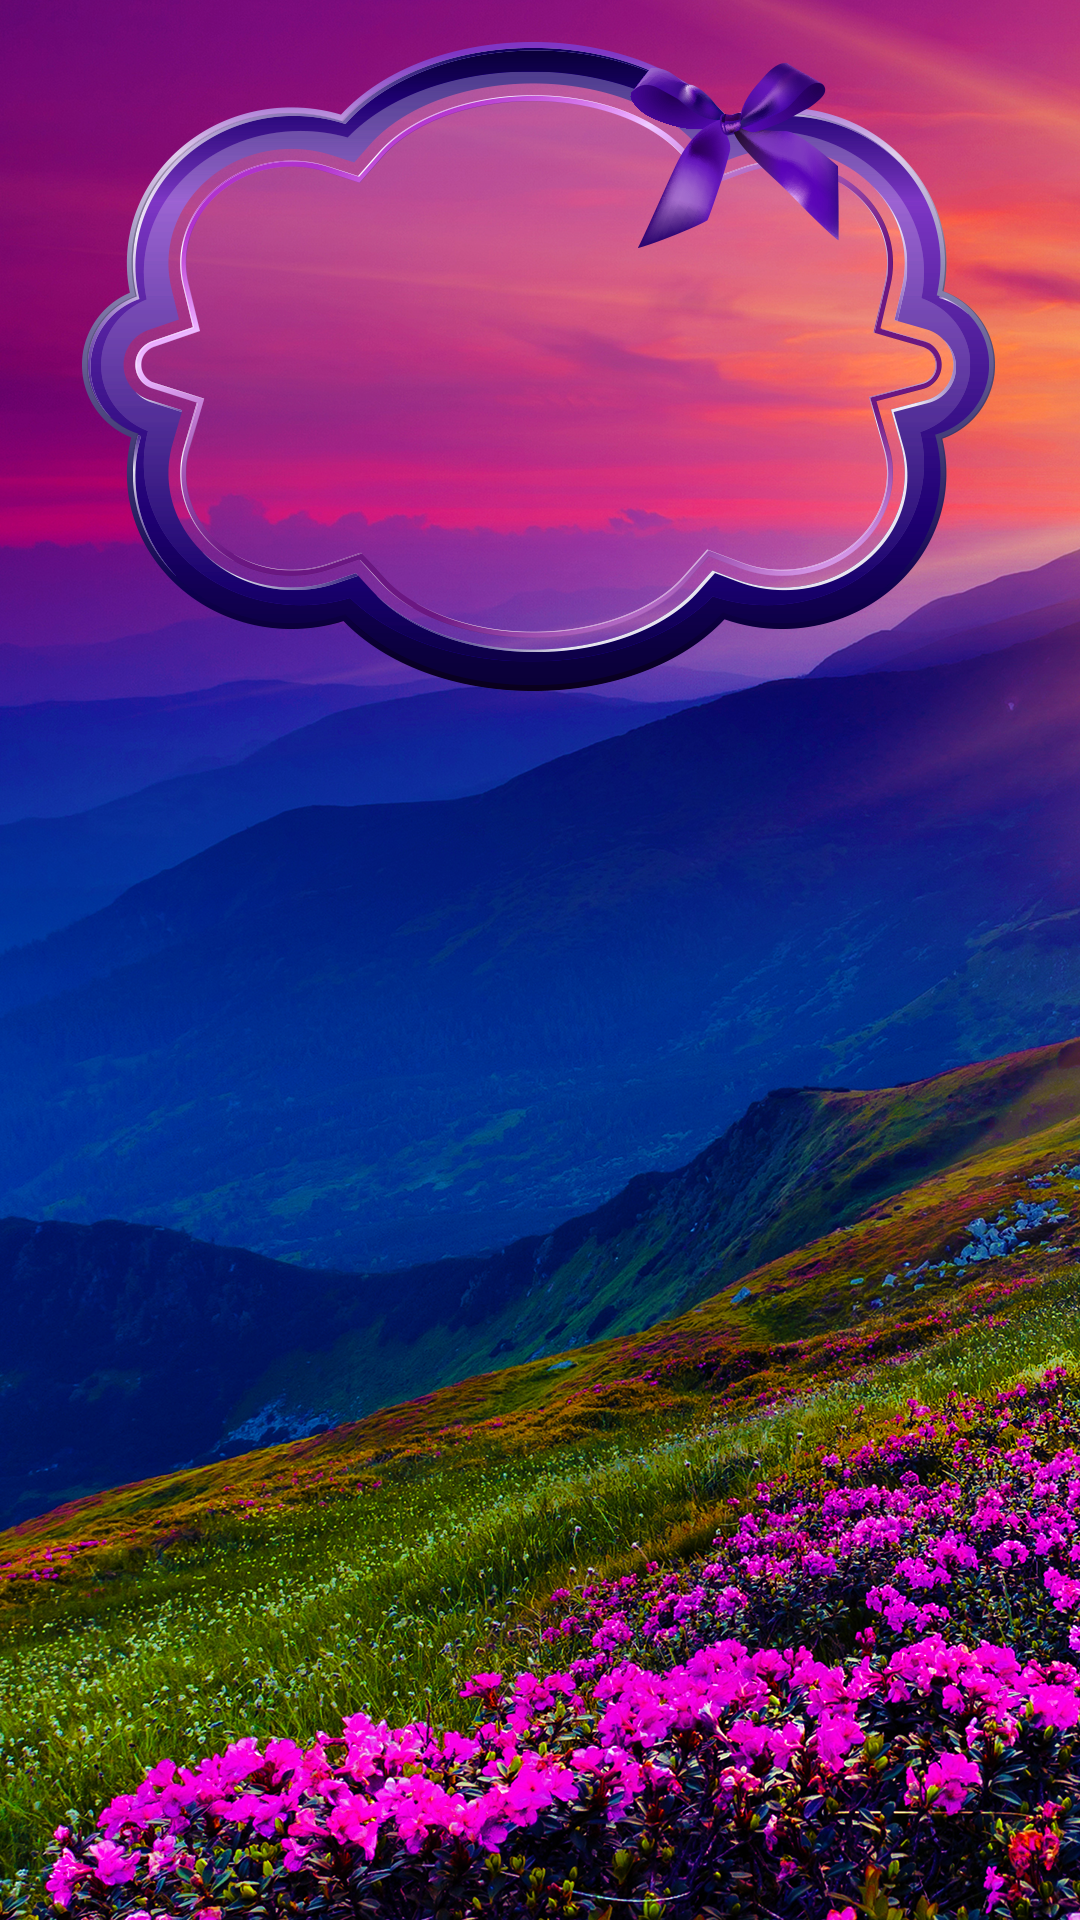 Lockscreens Art Creative Nature Mountain Flowers Sunset HD IPhone 6 Plus Lock Screen